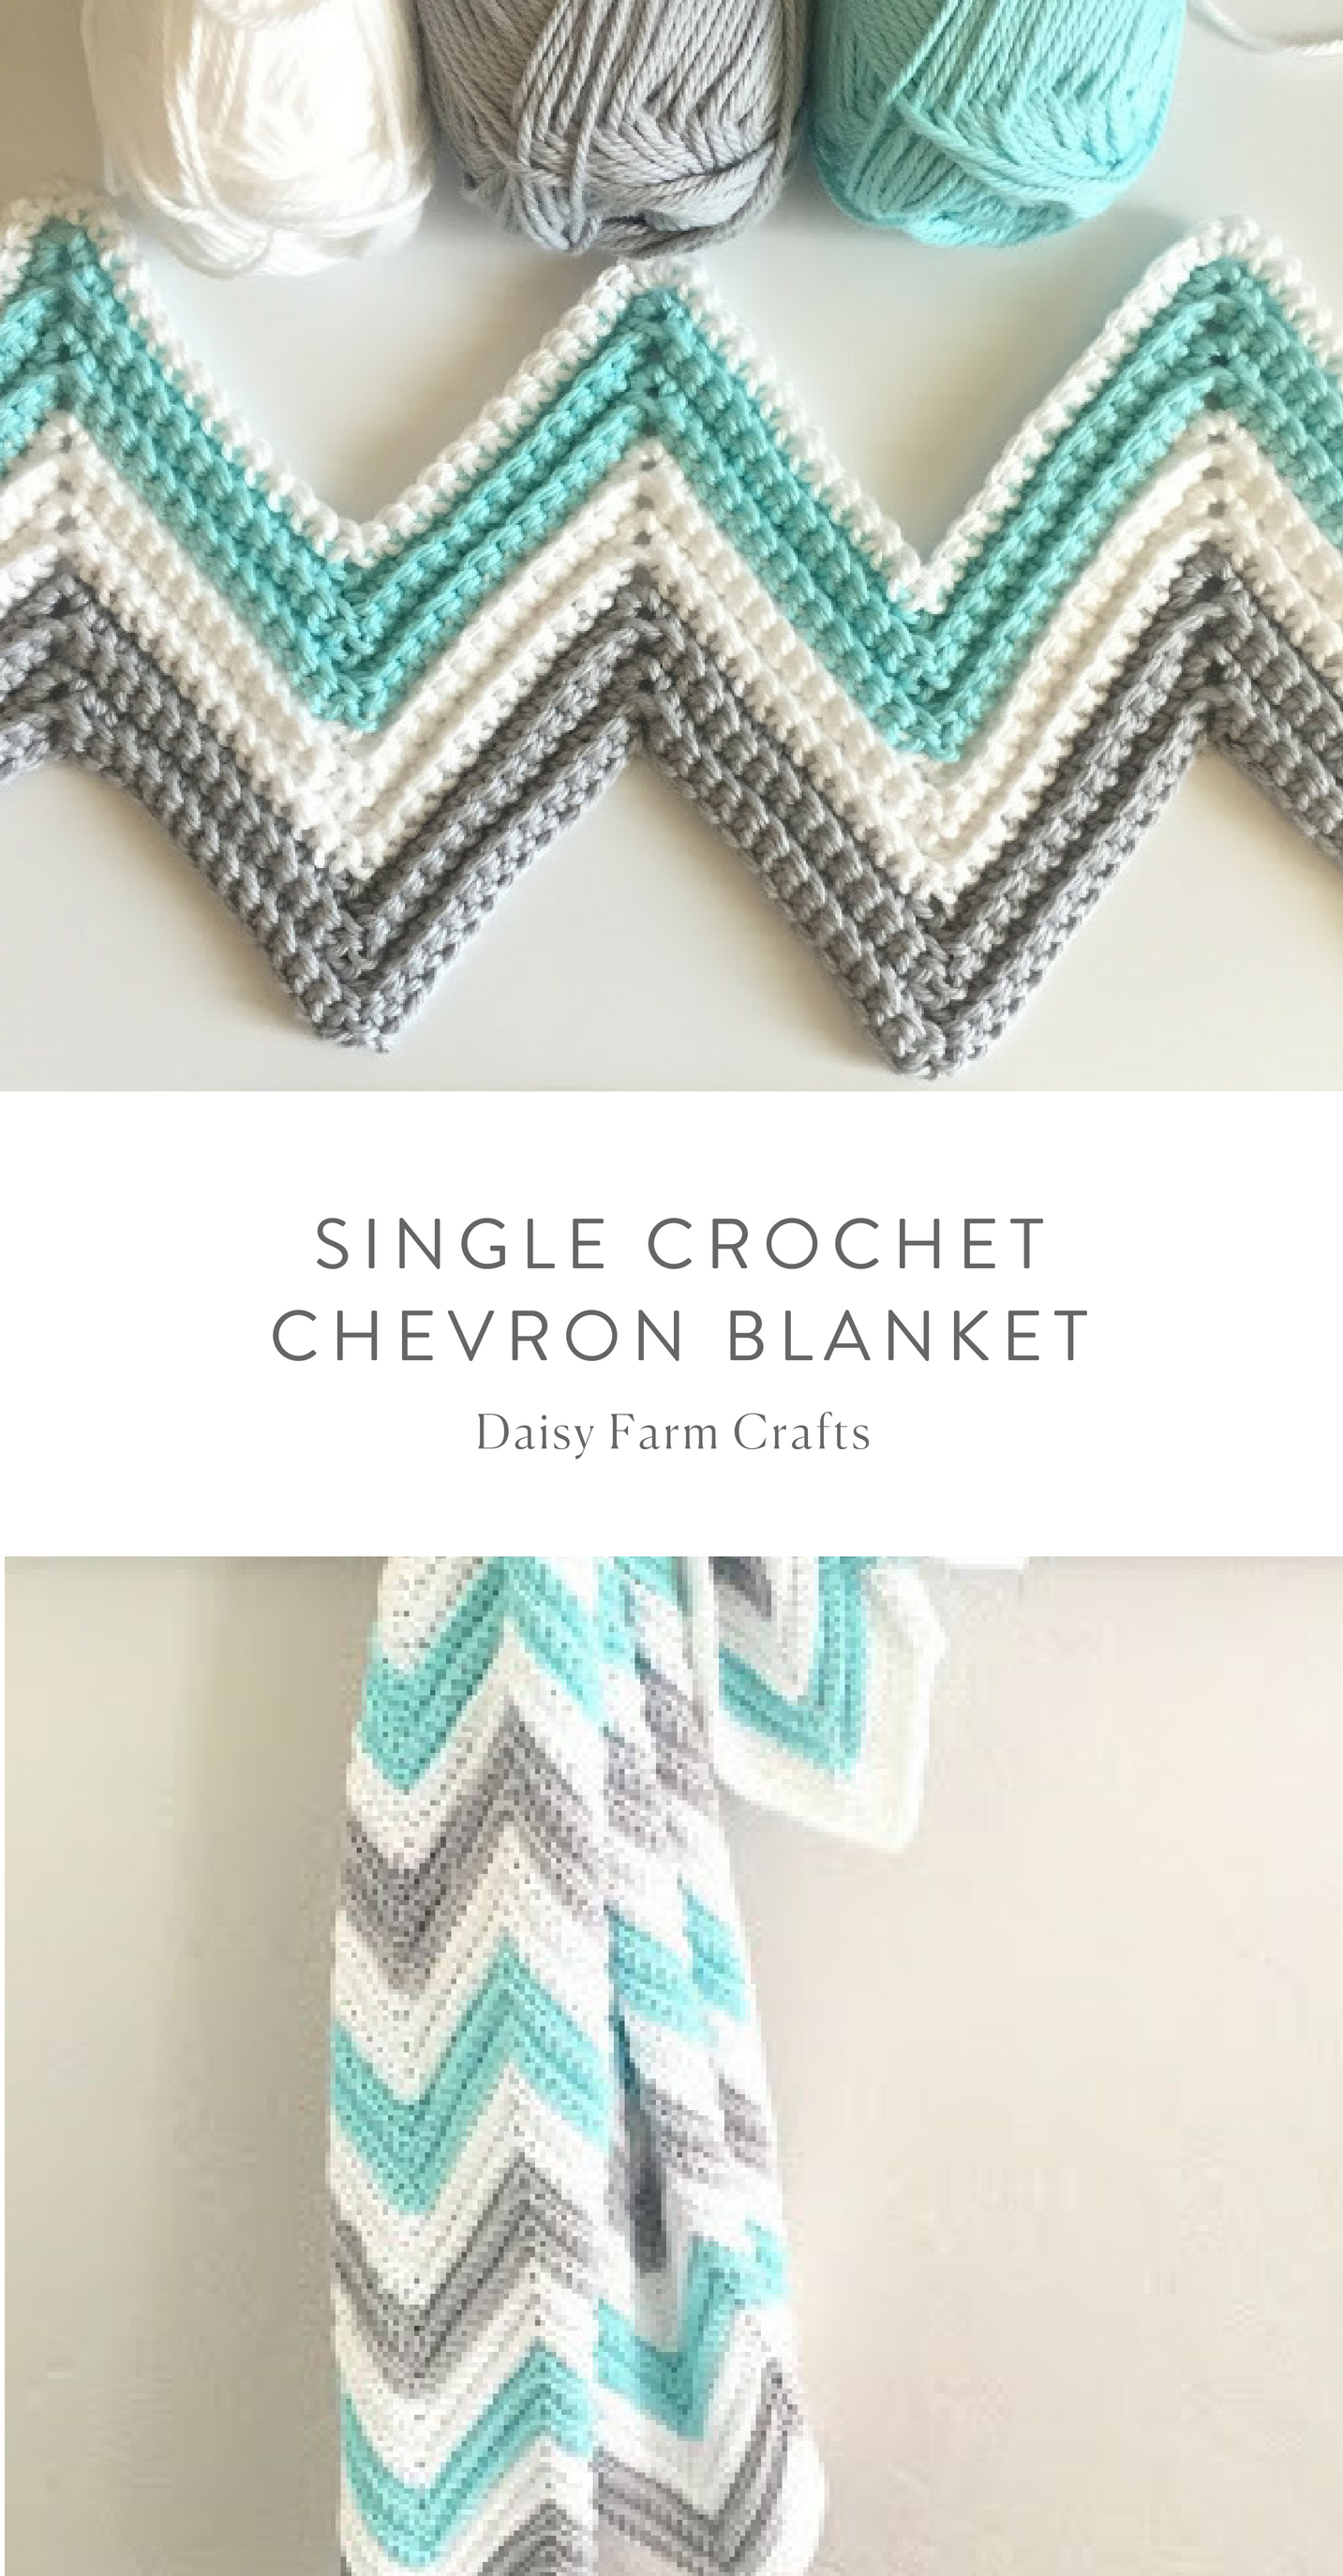 Free Pattern - Single Crochet Chevron Blanket #crochet | Sewing ...